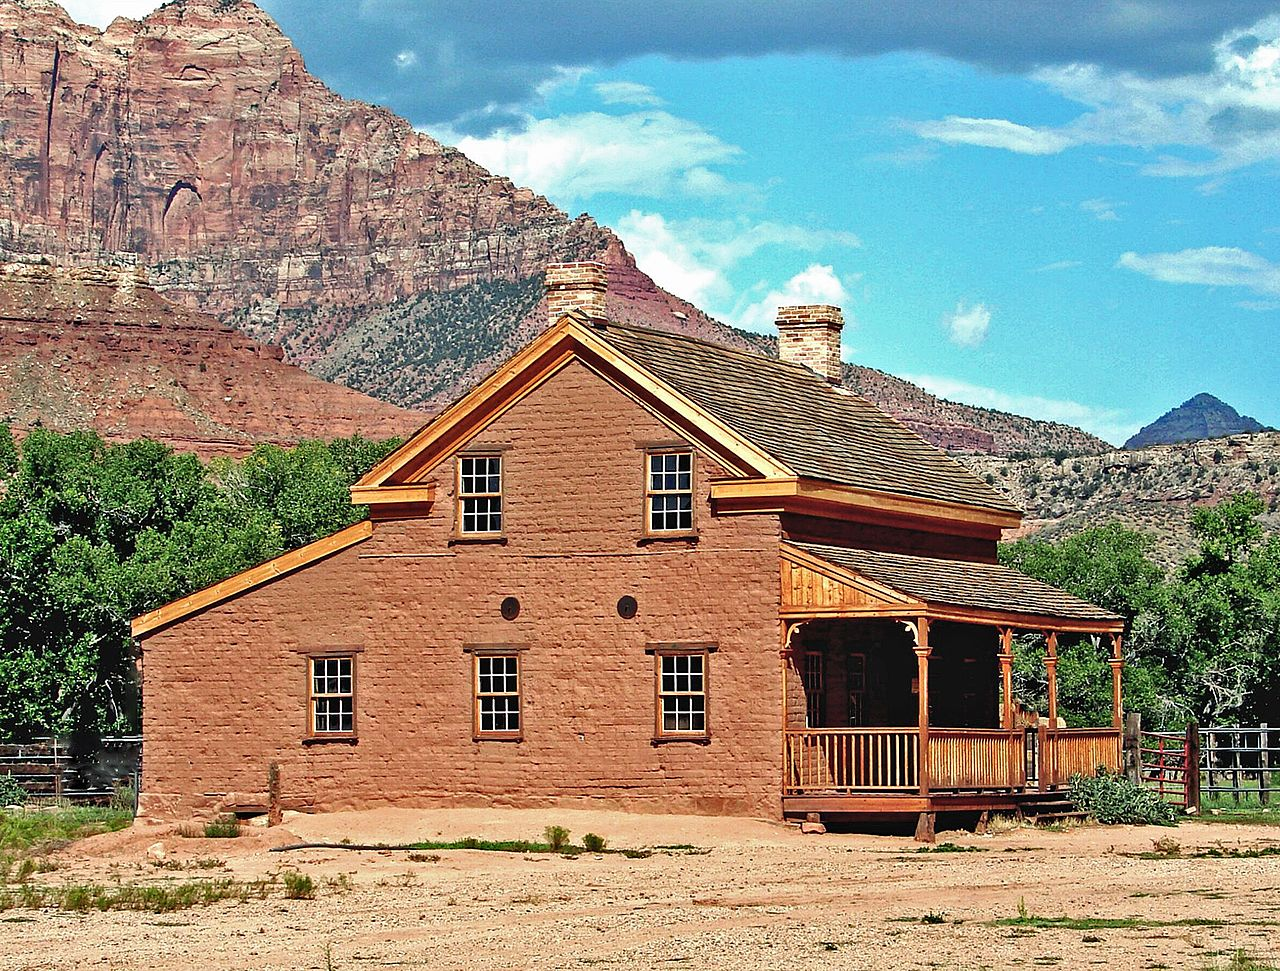 Restored Alonzo Haventon Russell Home--used in the movie Butch Cassidy and the Sundance Kid